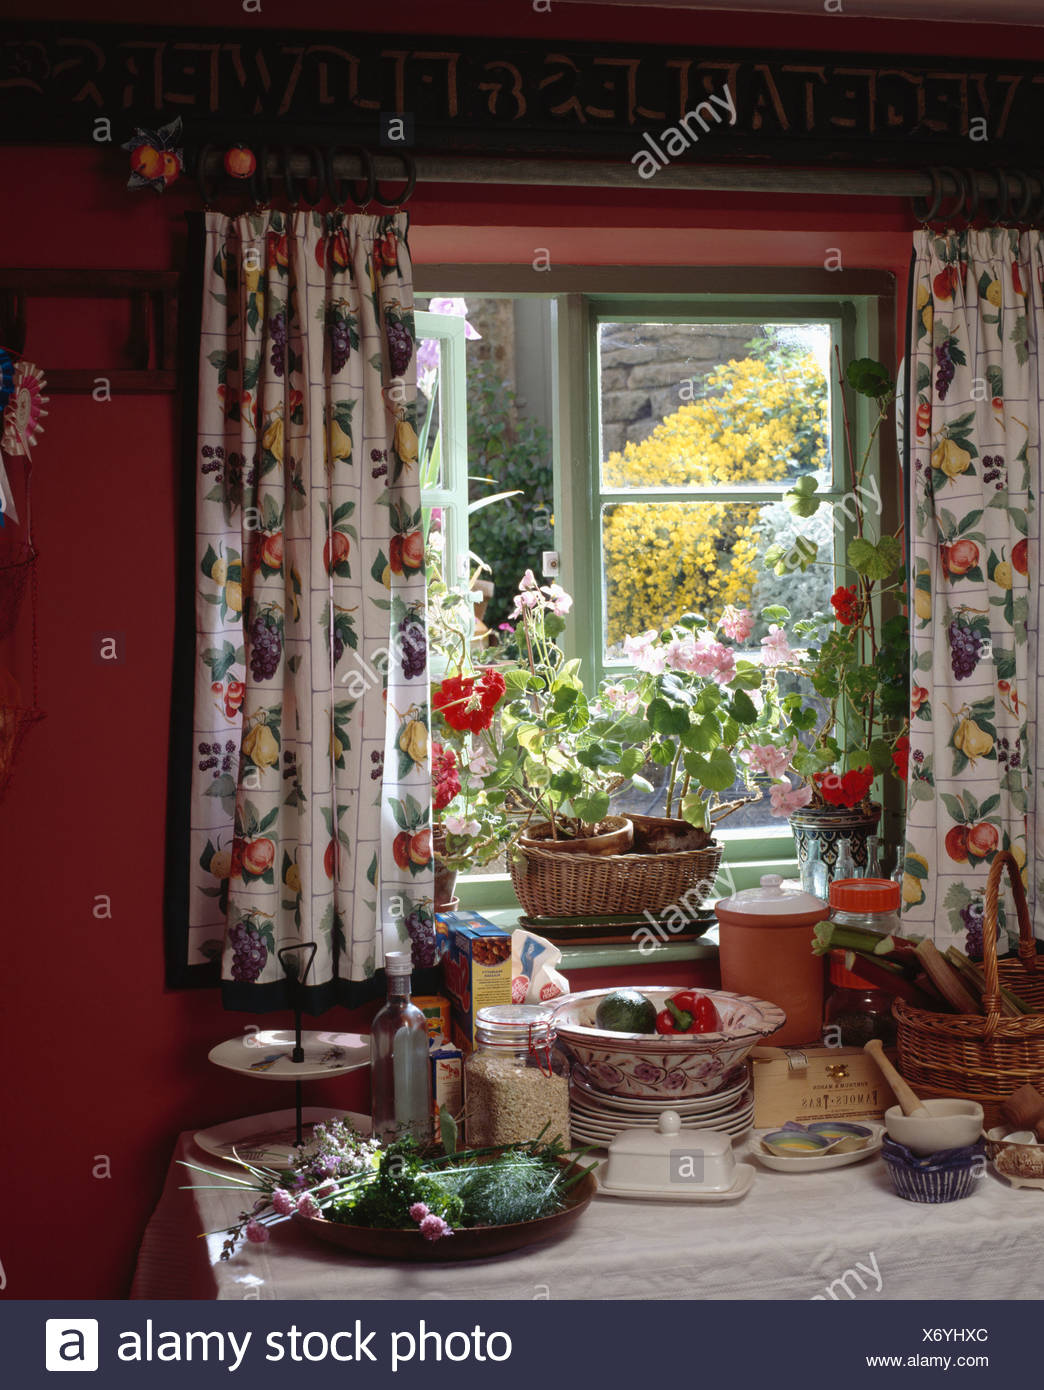 Close Up Of Floral Curtains On Green Cottage Window Above Kitchen Worktop With Pestle And Mortar And Ceramic Pots Stock Photo Alamy